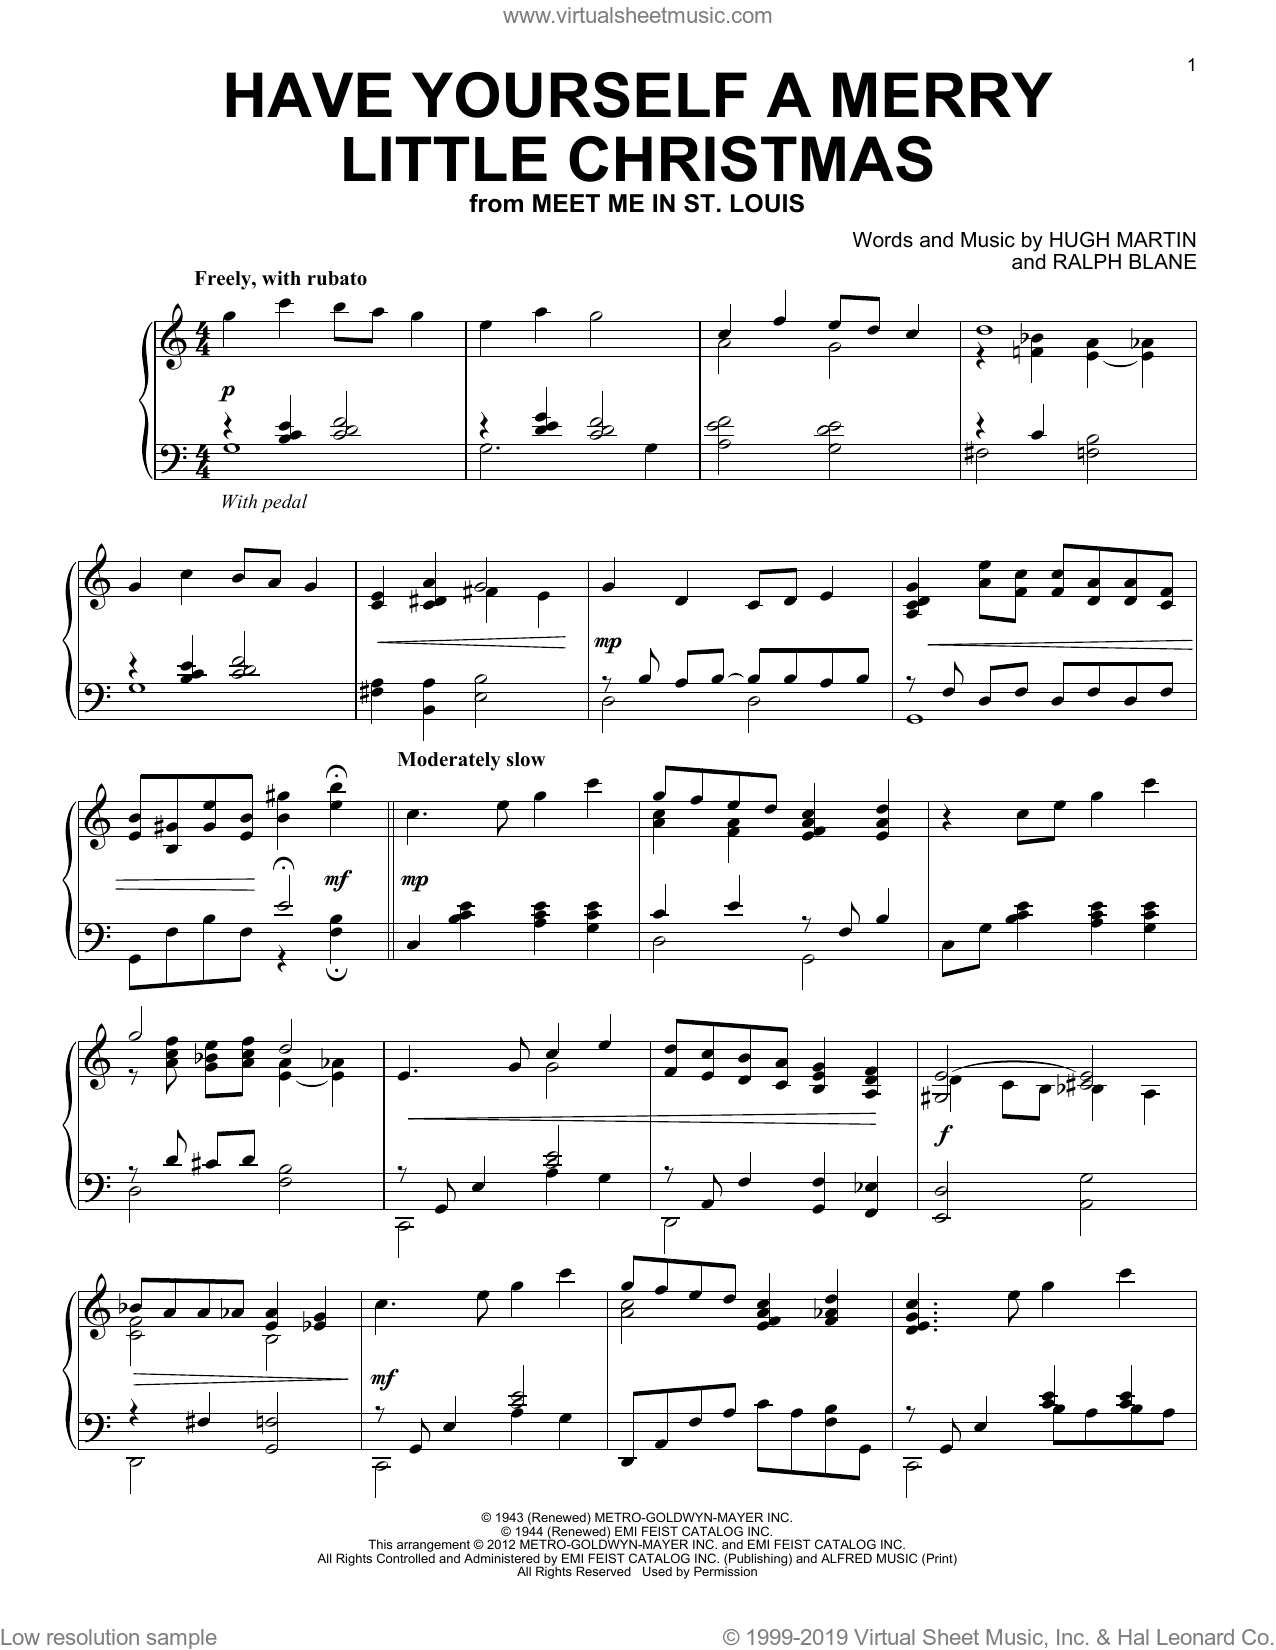 Have Yourself A Merry Little Christmas sheet music for piano solo by Hugh Martin and Ralph Blane, intermediate skill level